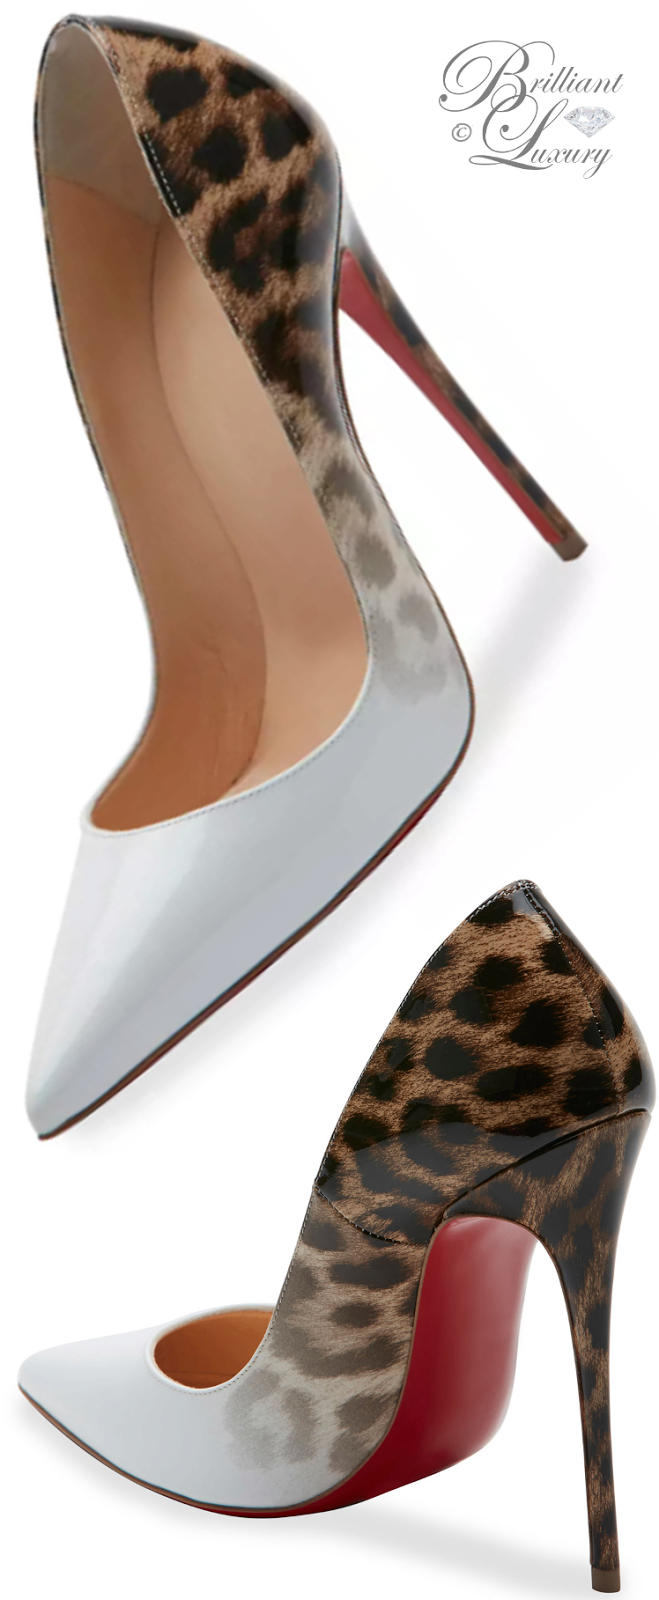 8bd0224e886 Brilliant Luxury   Christian Louboutin So Kate Degrade 120mm Red Sole Pump